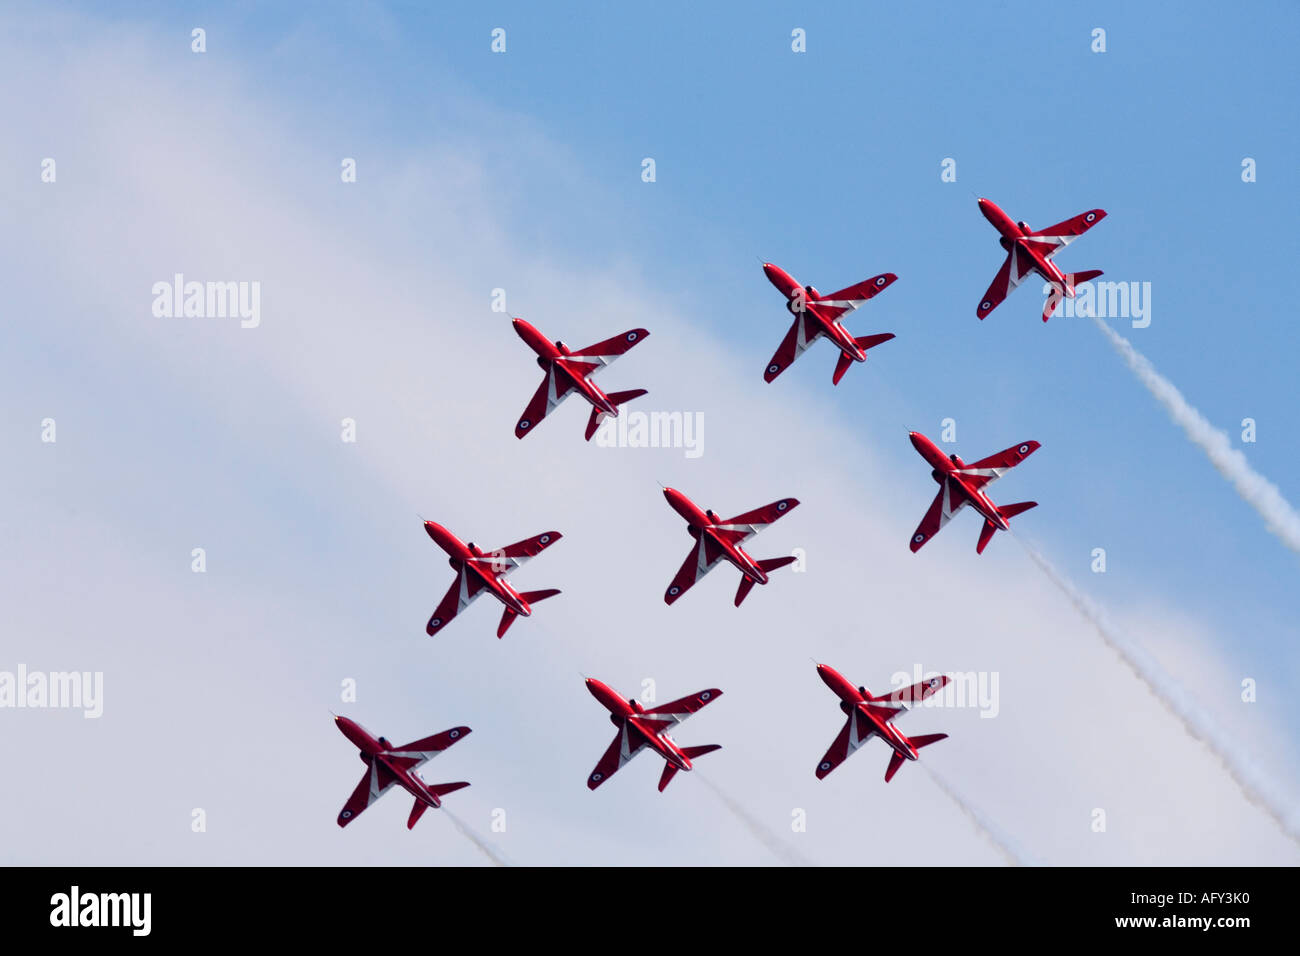 Red Arrows Royal Air Force RAF aerobatic display team in Hawk trainer aircraft at Fairford international air show display - Stock Image